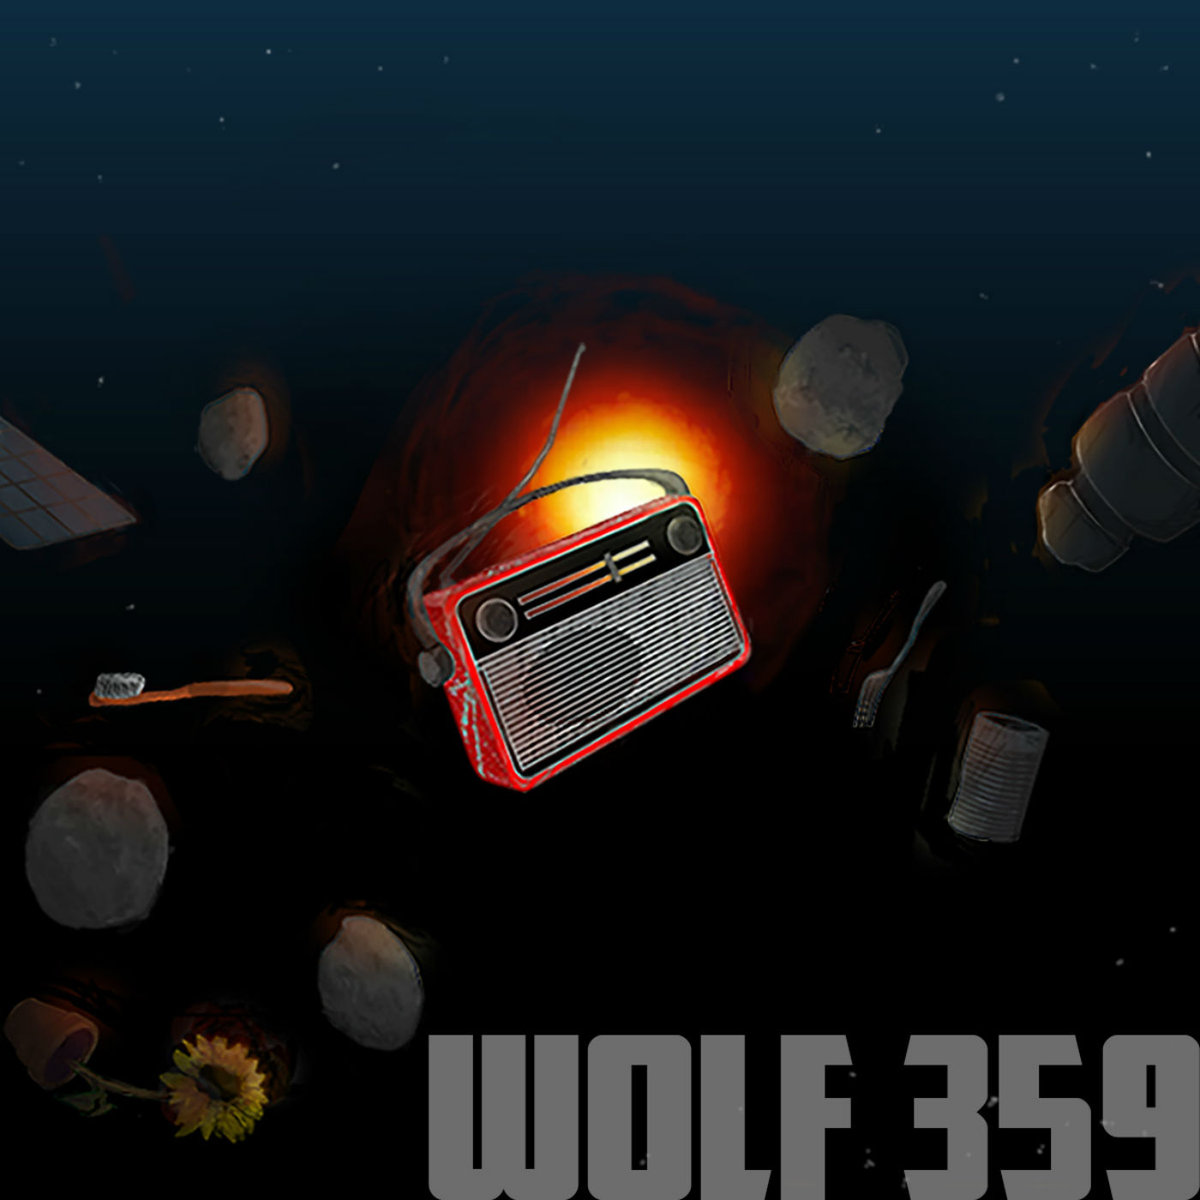 Wolf 359 podcast artwork